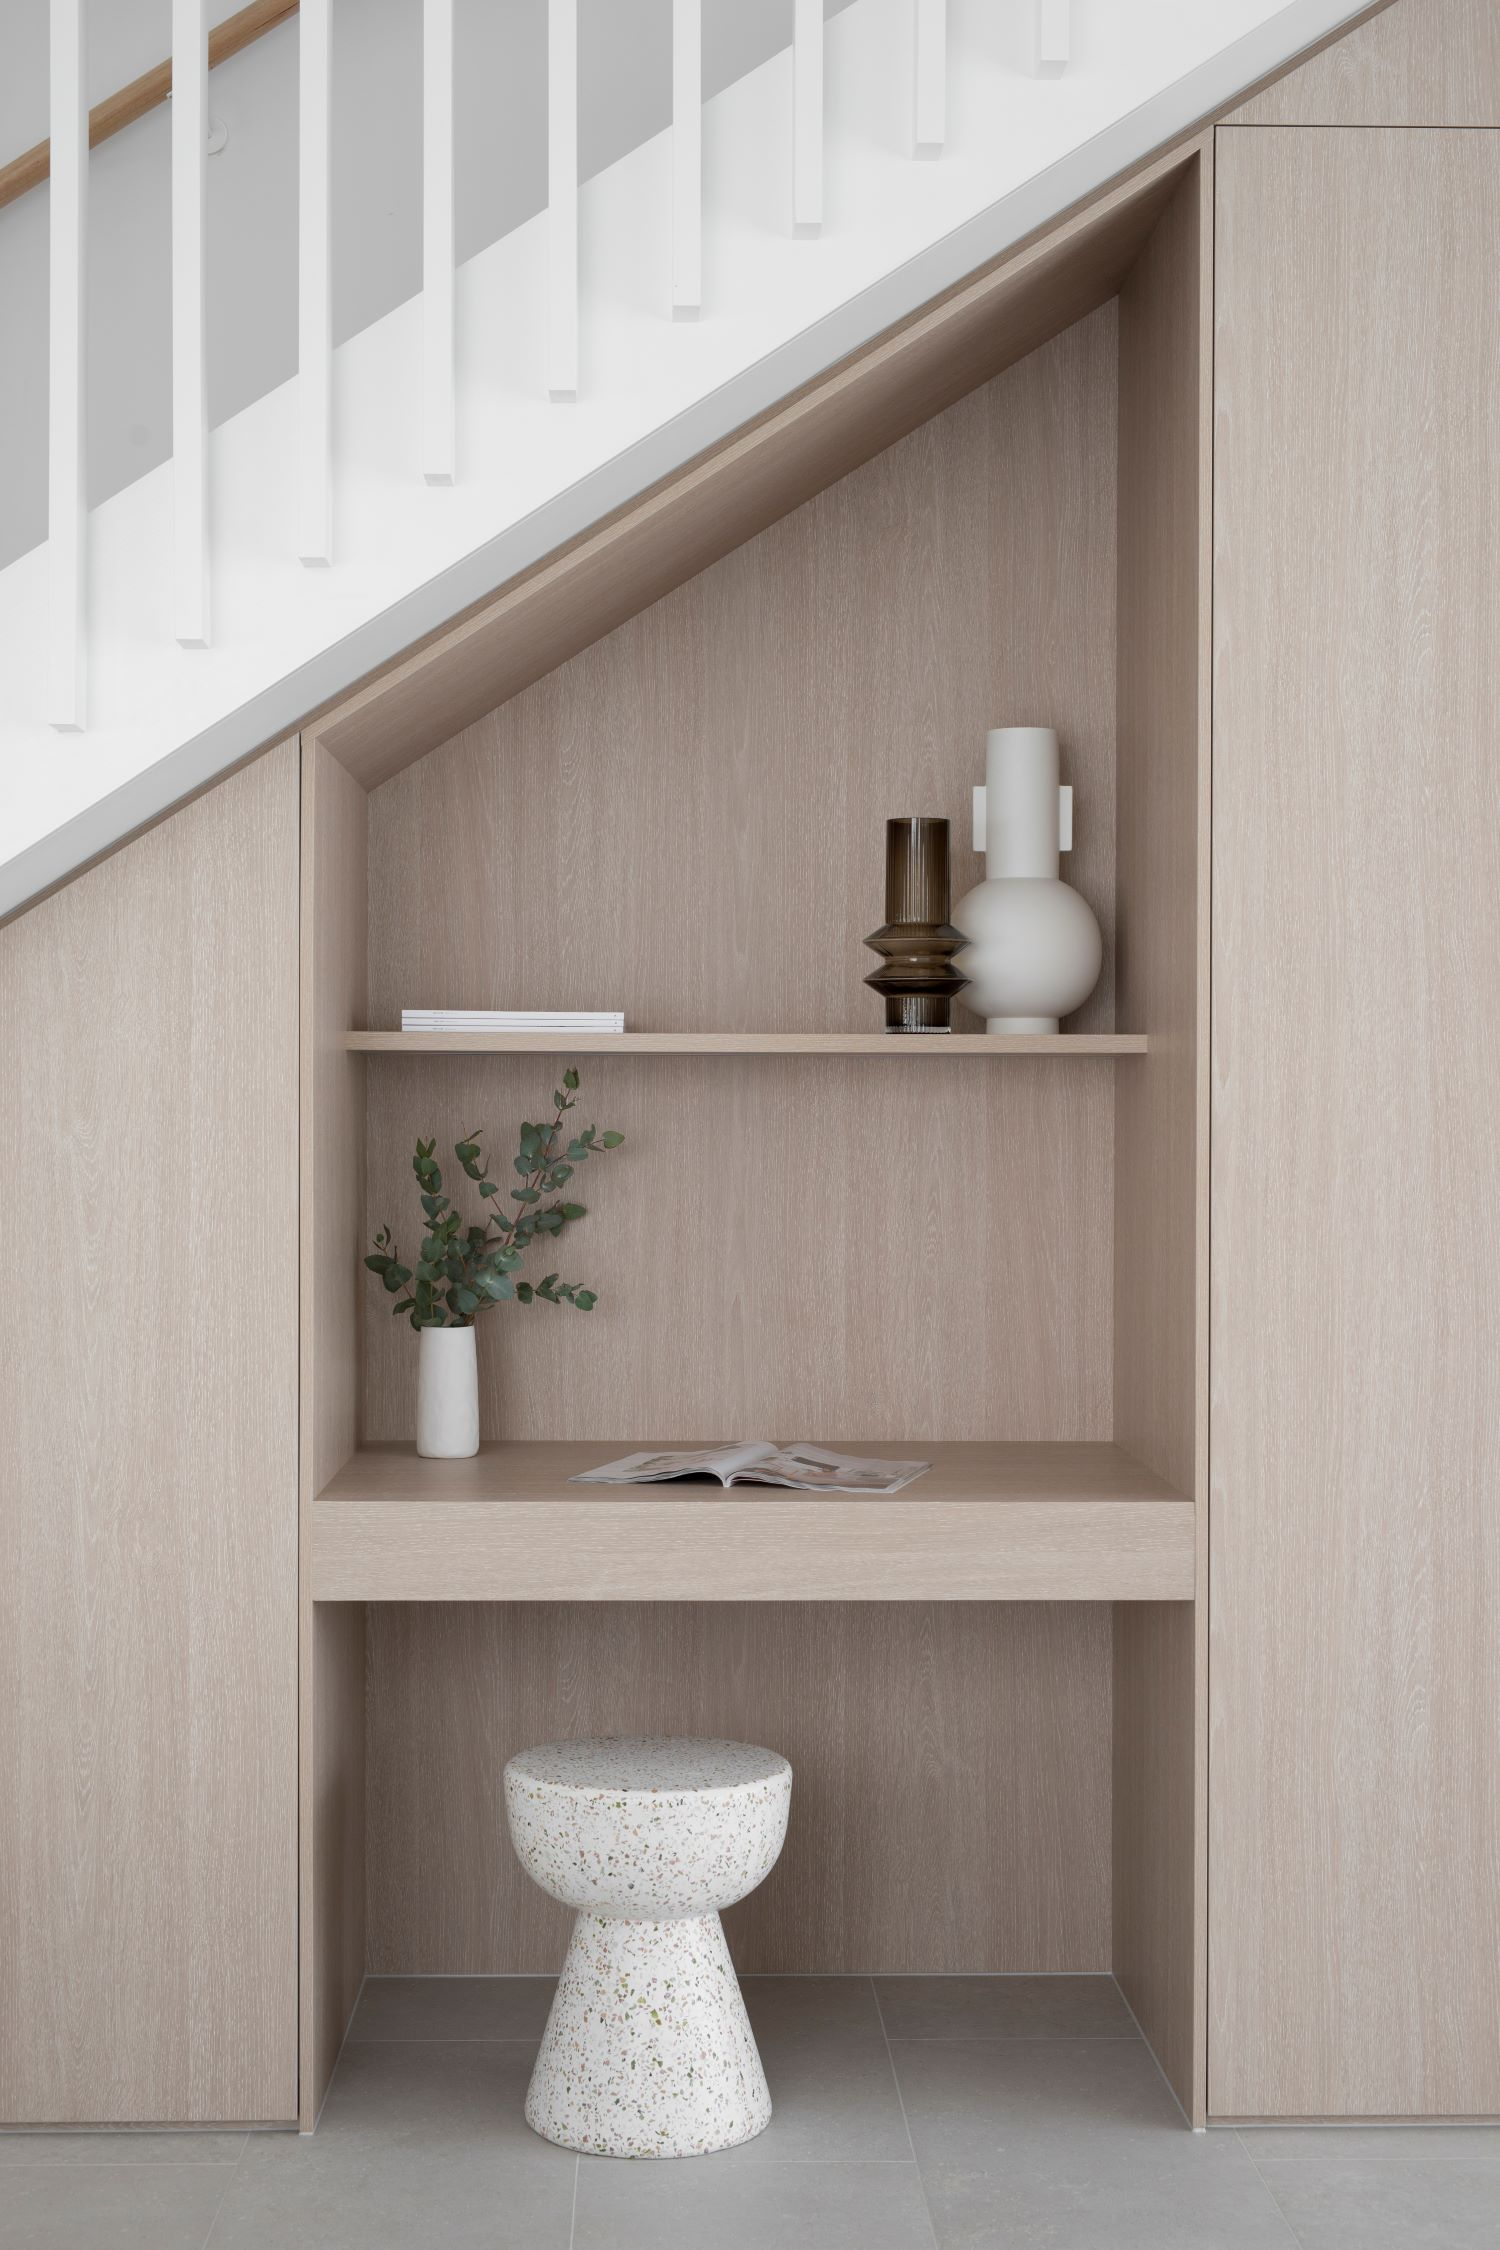 zephyr-stone-interior-design-influencers-study-nook-joinery